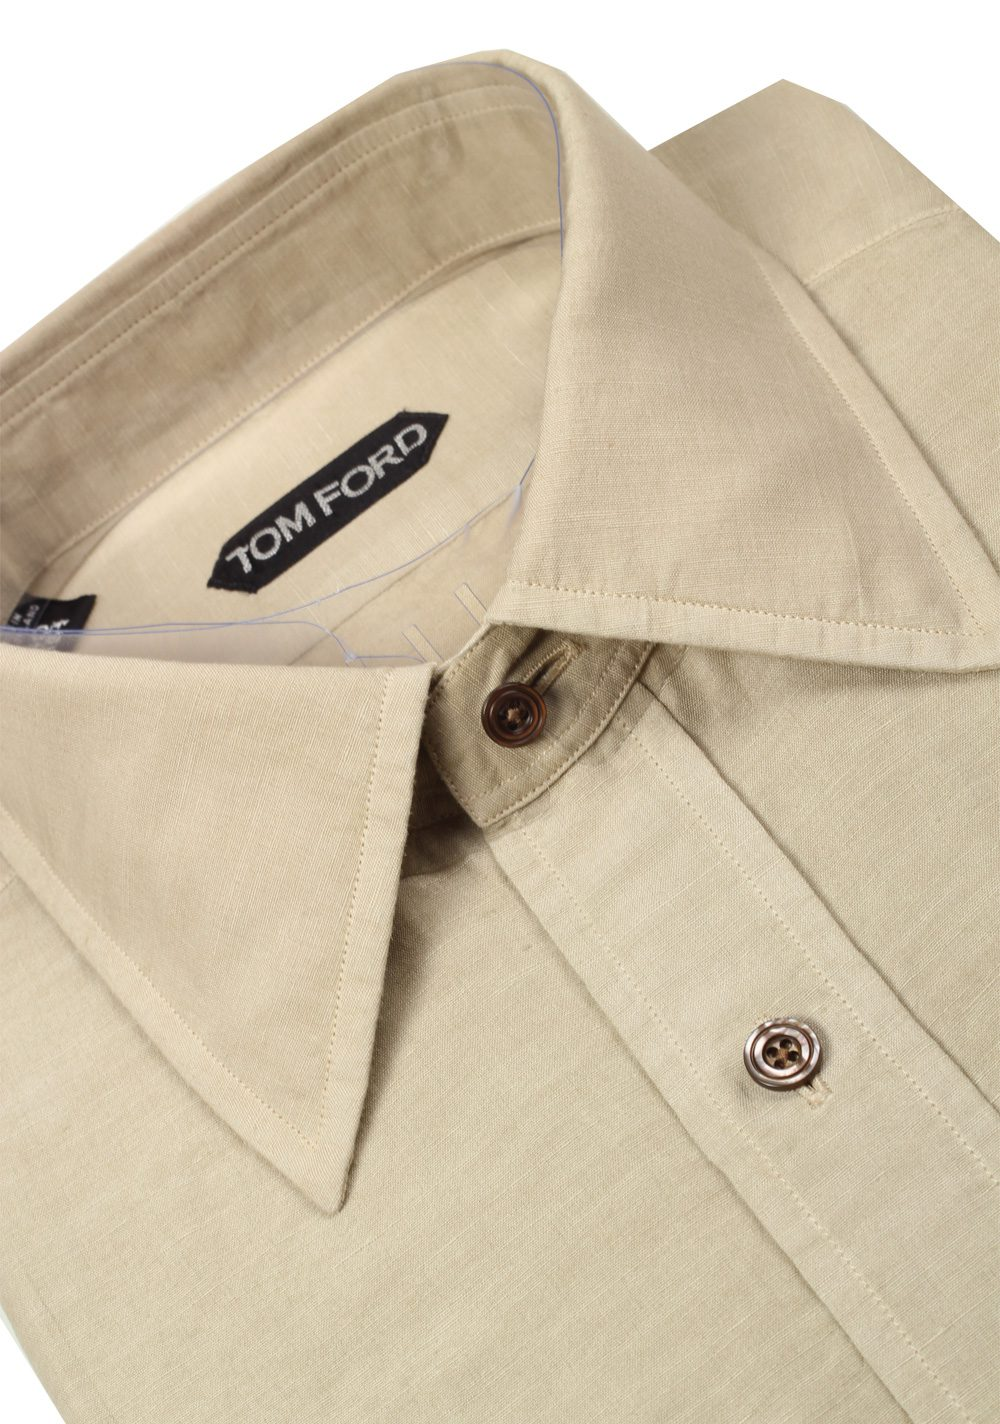 TOM FORD Solid Beige Dress Shirt Size 40 / 15,75 U.S. | Costume Limité